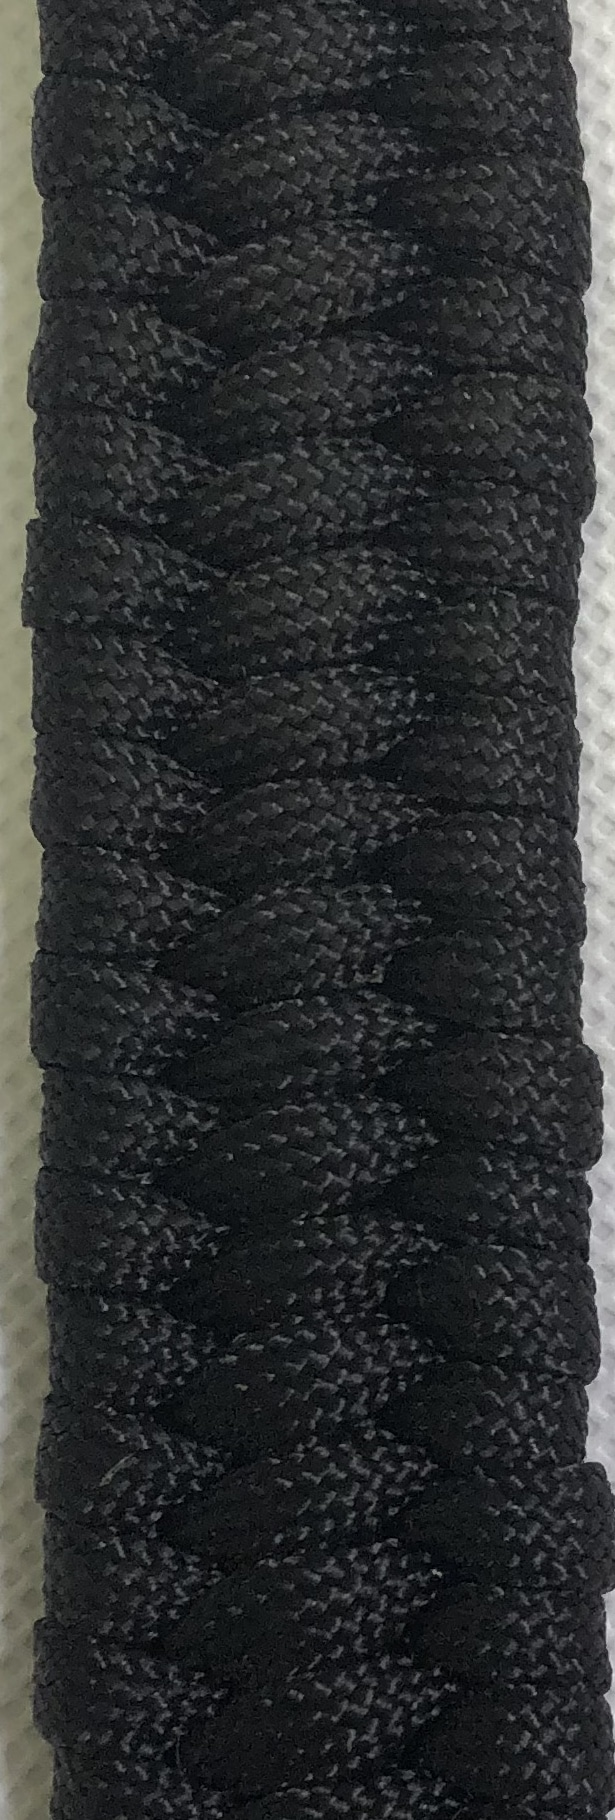 paracord-dog-collar-black